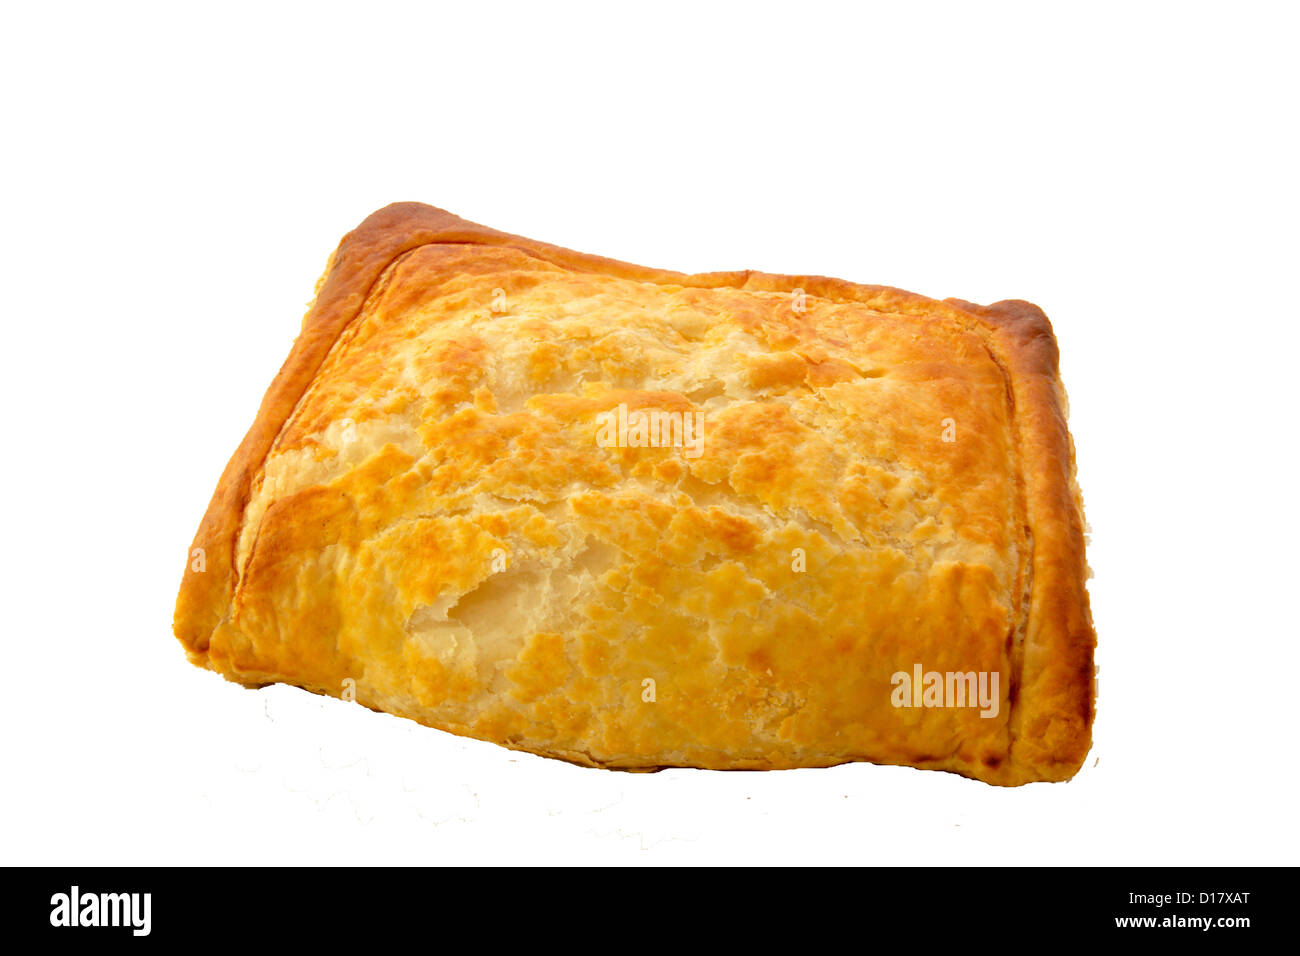 Flaky pastry cheese bake - Stock Image